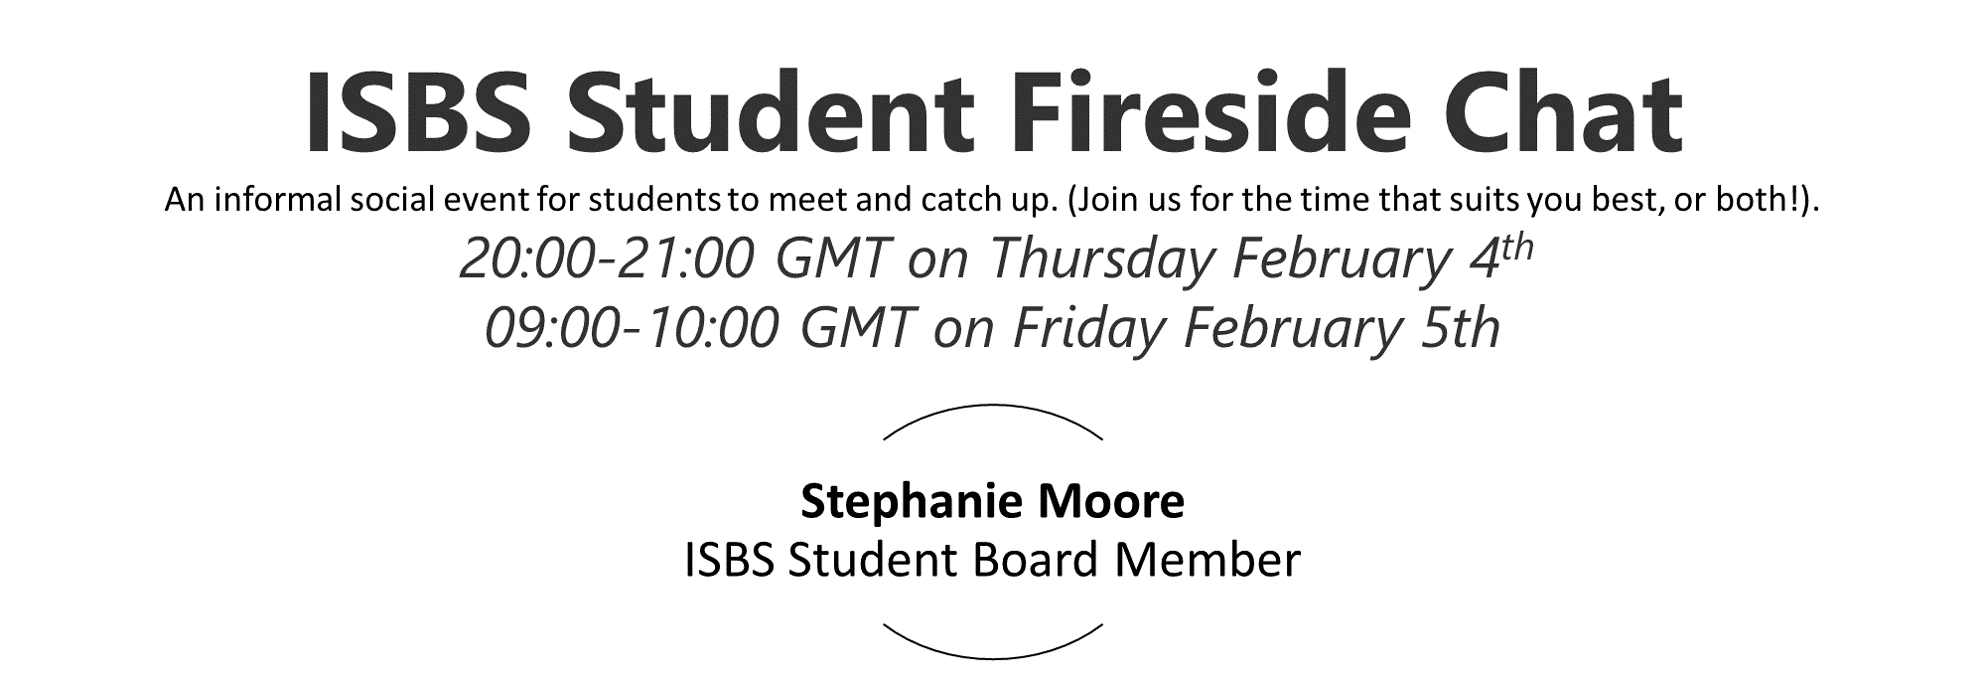 ISBS Student Fireside Chat An informal social event for students to meet and catch up. (Join us for the time that suits you best, or both!).  20:00-21:00 GMT on Thursday February 4th 09:00-10:00 GMT on Friday February 5th.  Moderator Stephanie Moore ISBS Student Board Member